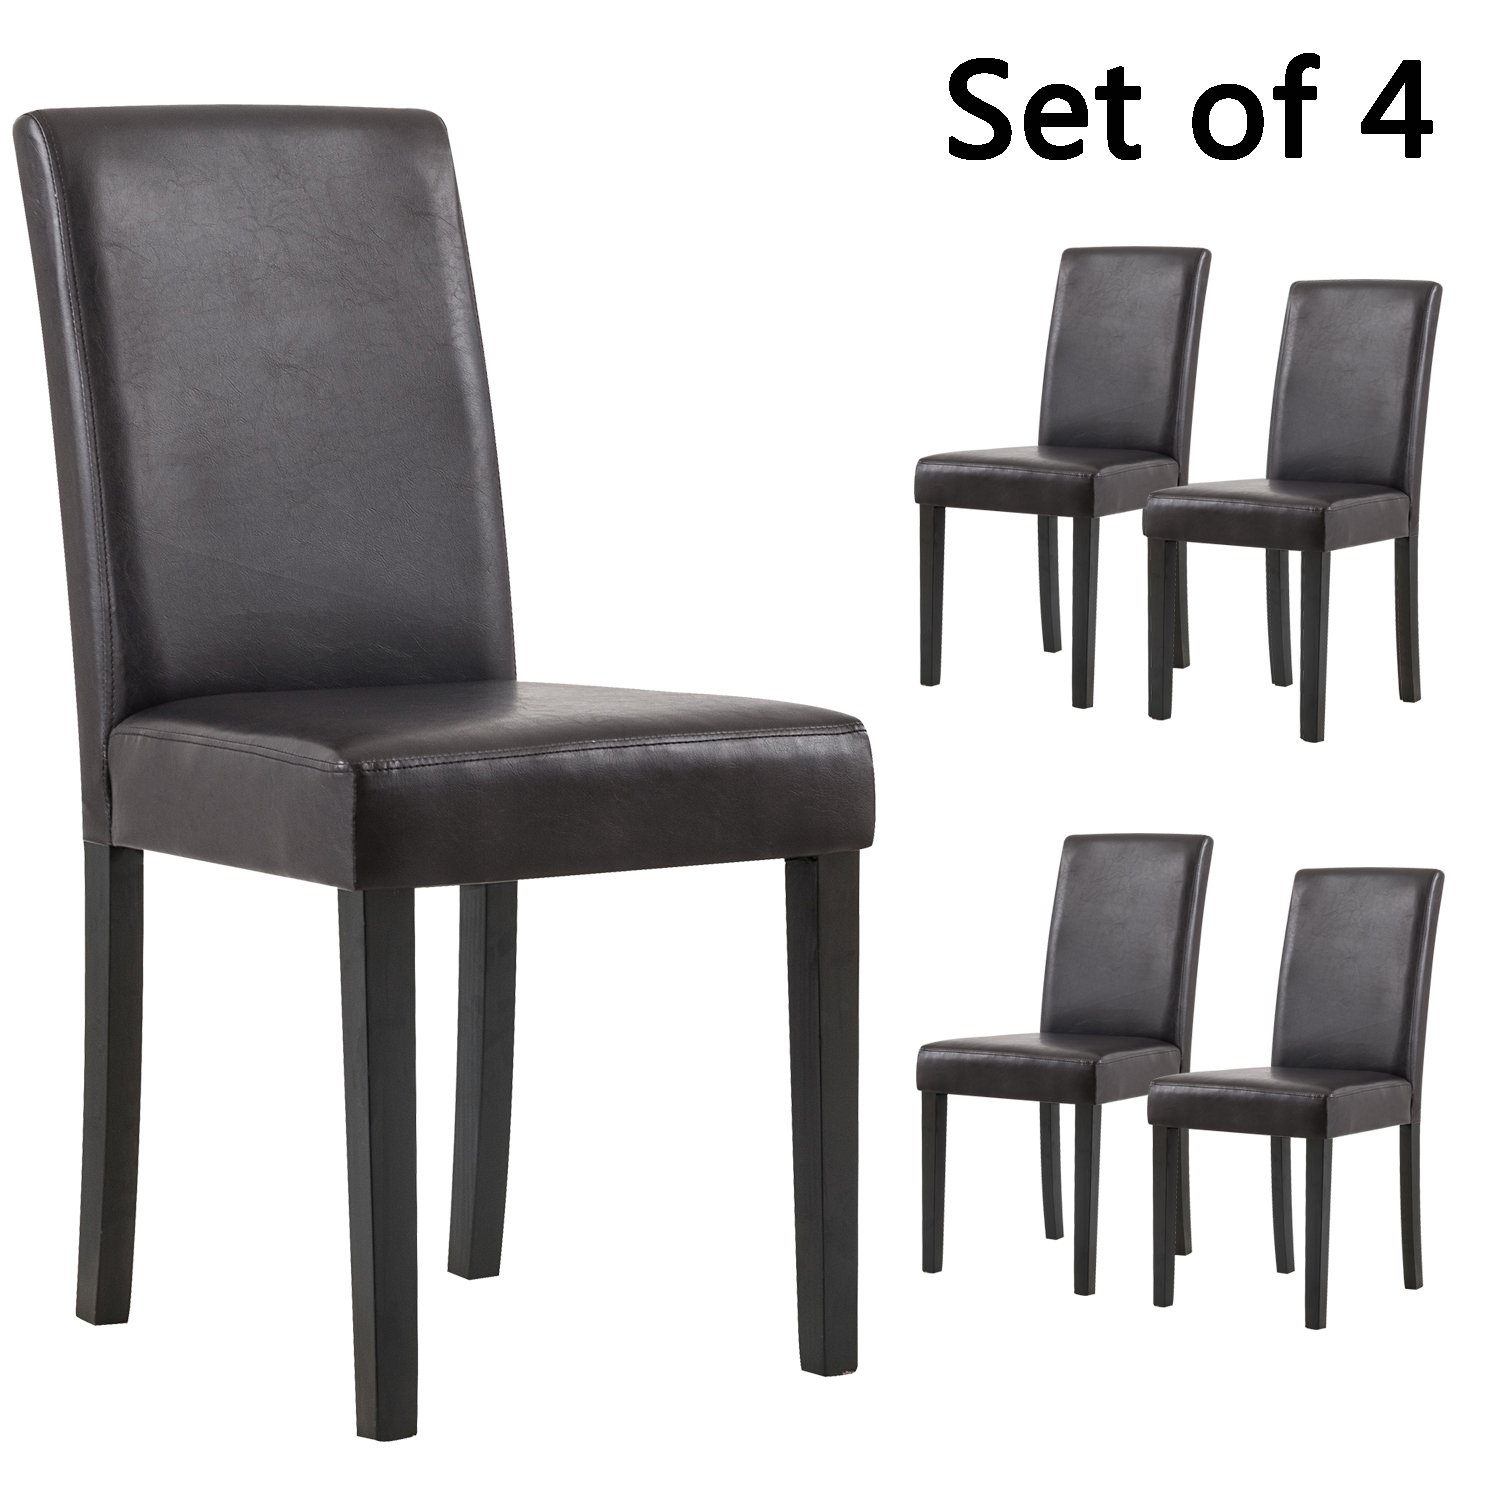 YEEFY Set of 4 Urban Style Solid Wood Leatherette Padded Parson Dining Chair (Brown)